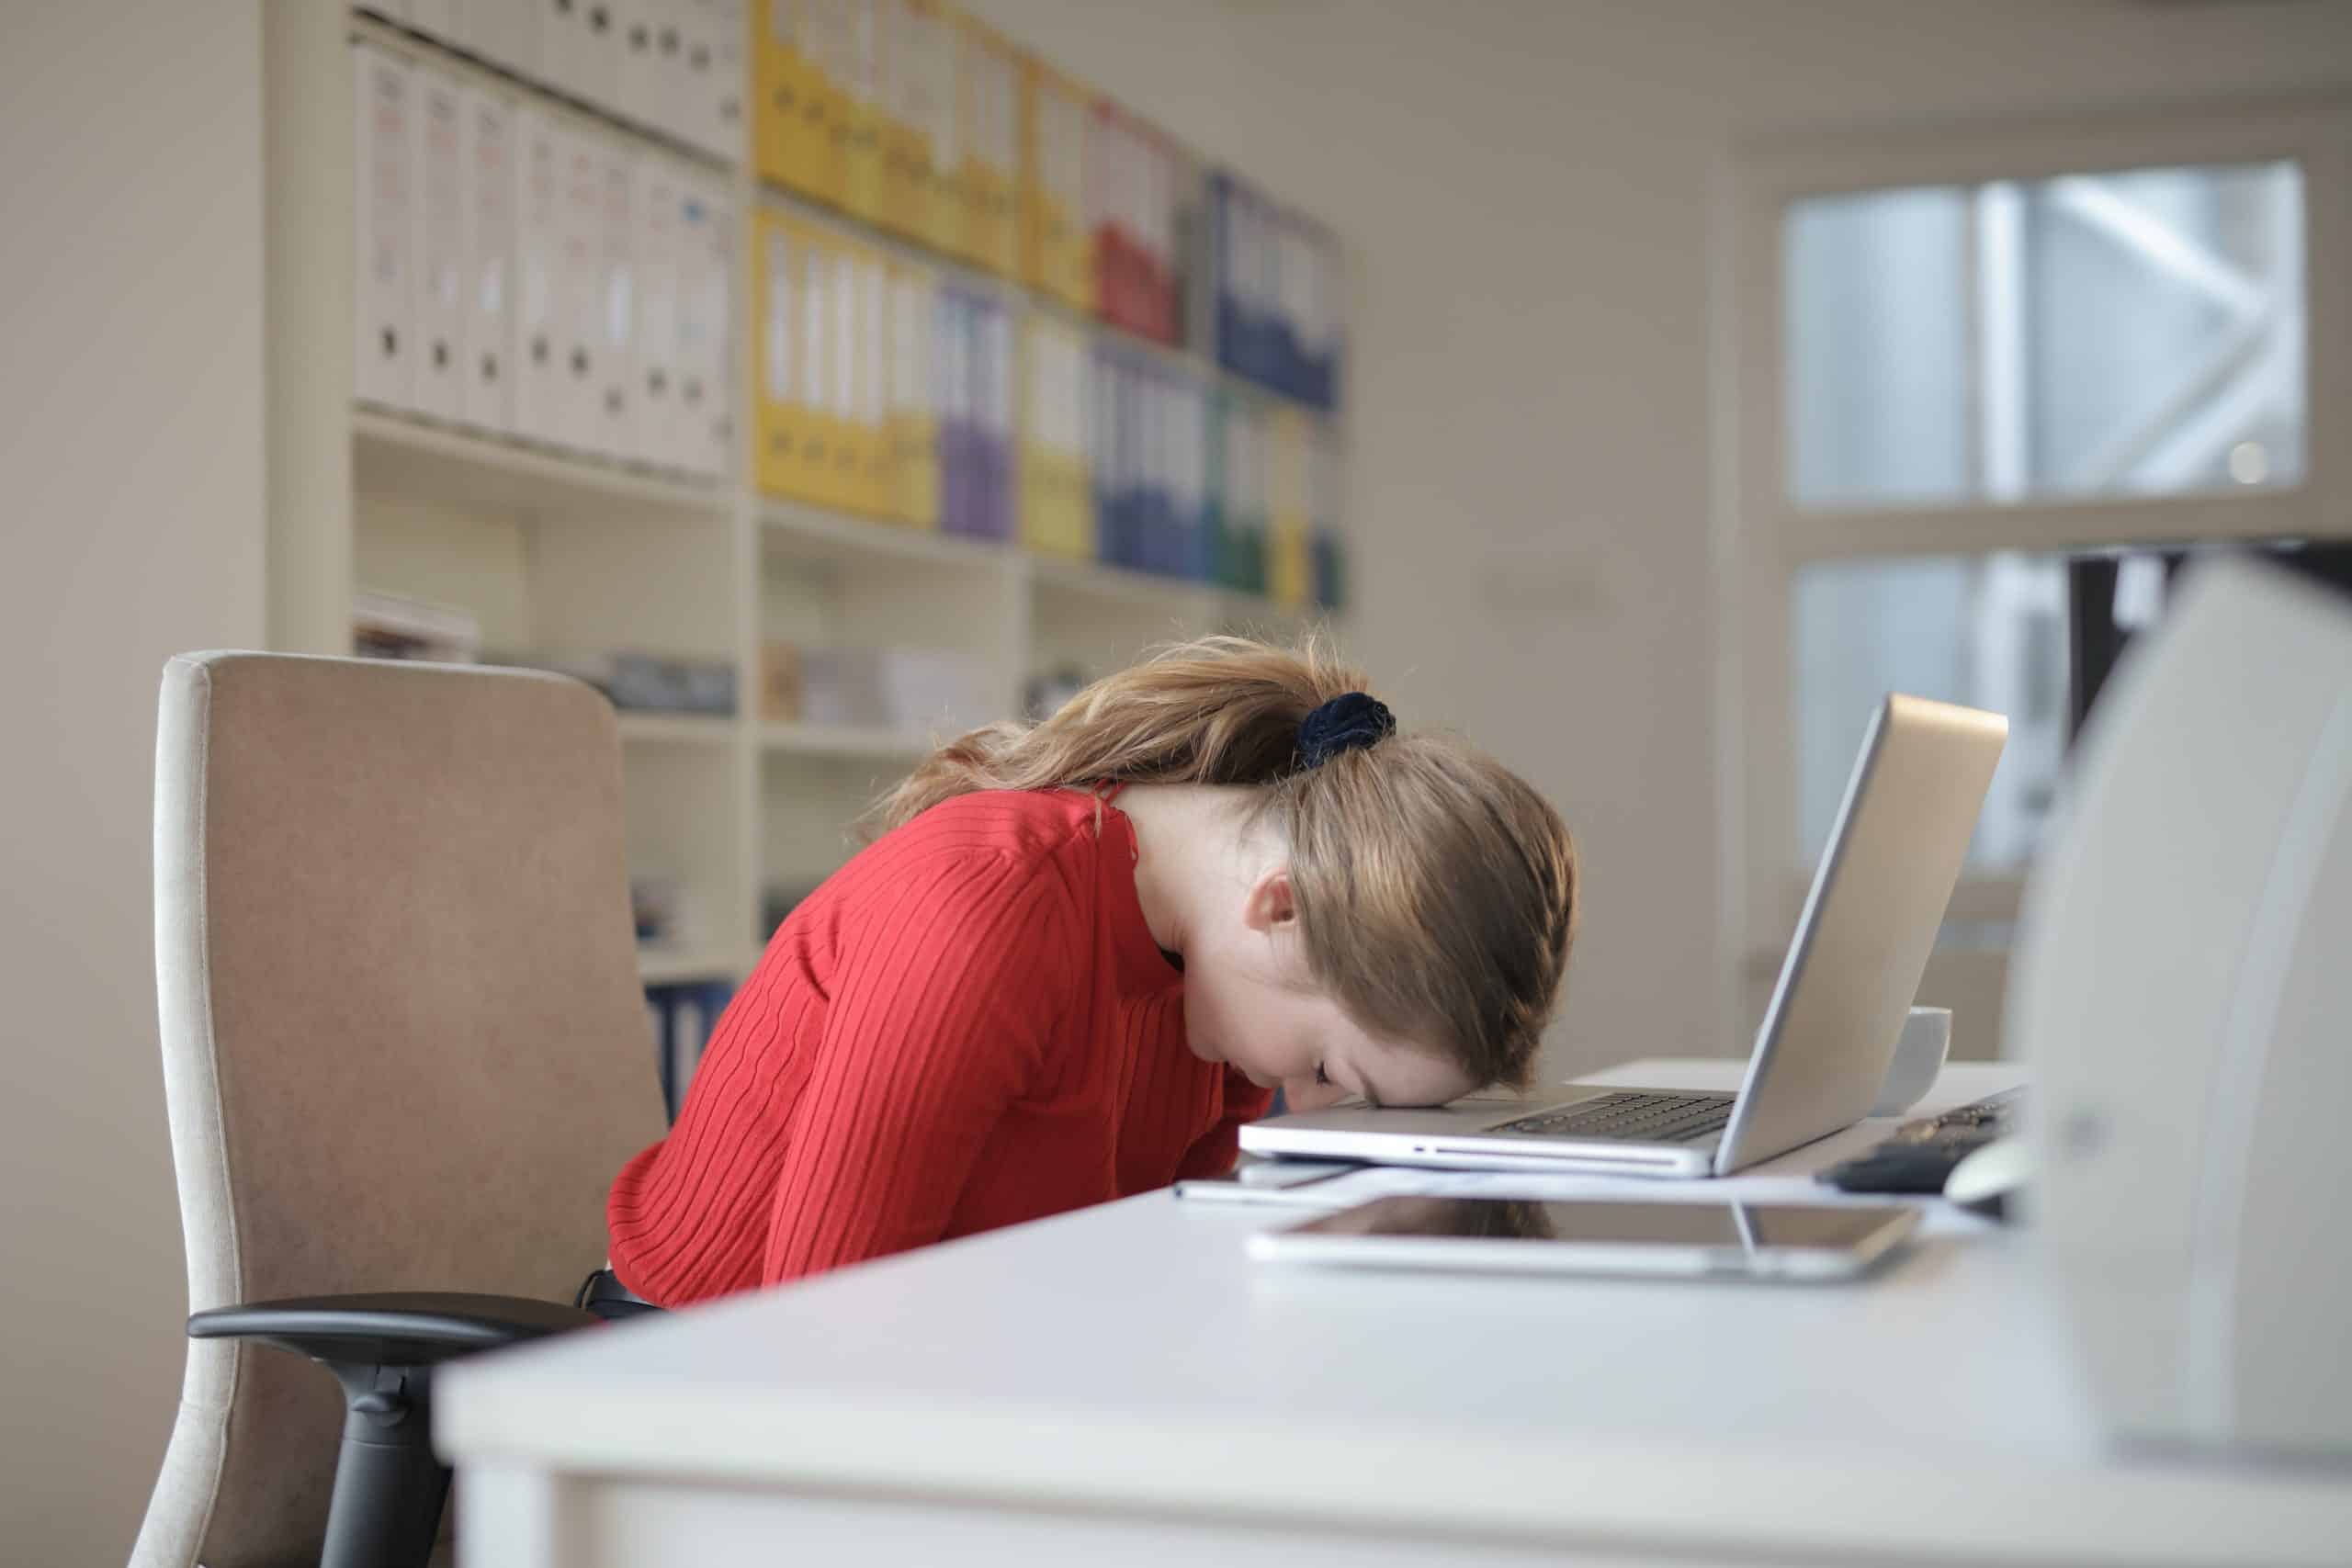 Ergonomics – What Is Your Best Posture to Work in?